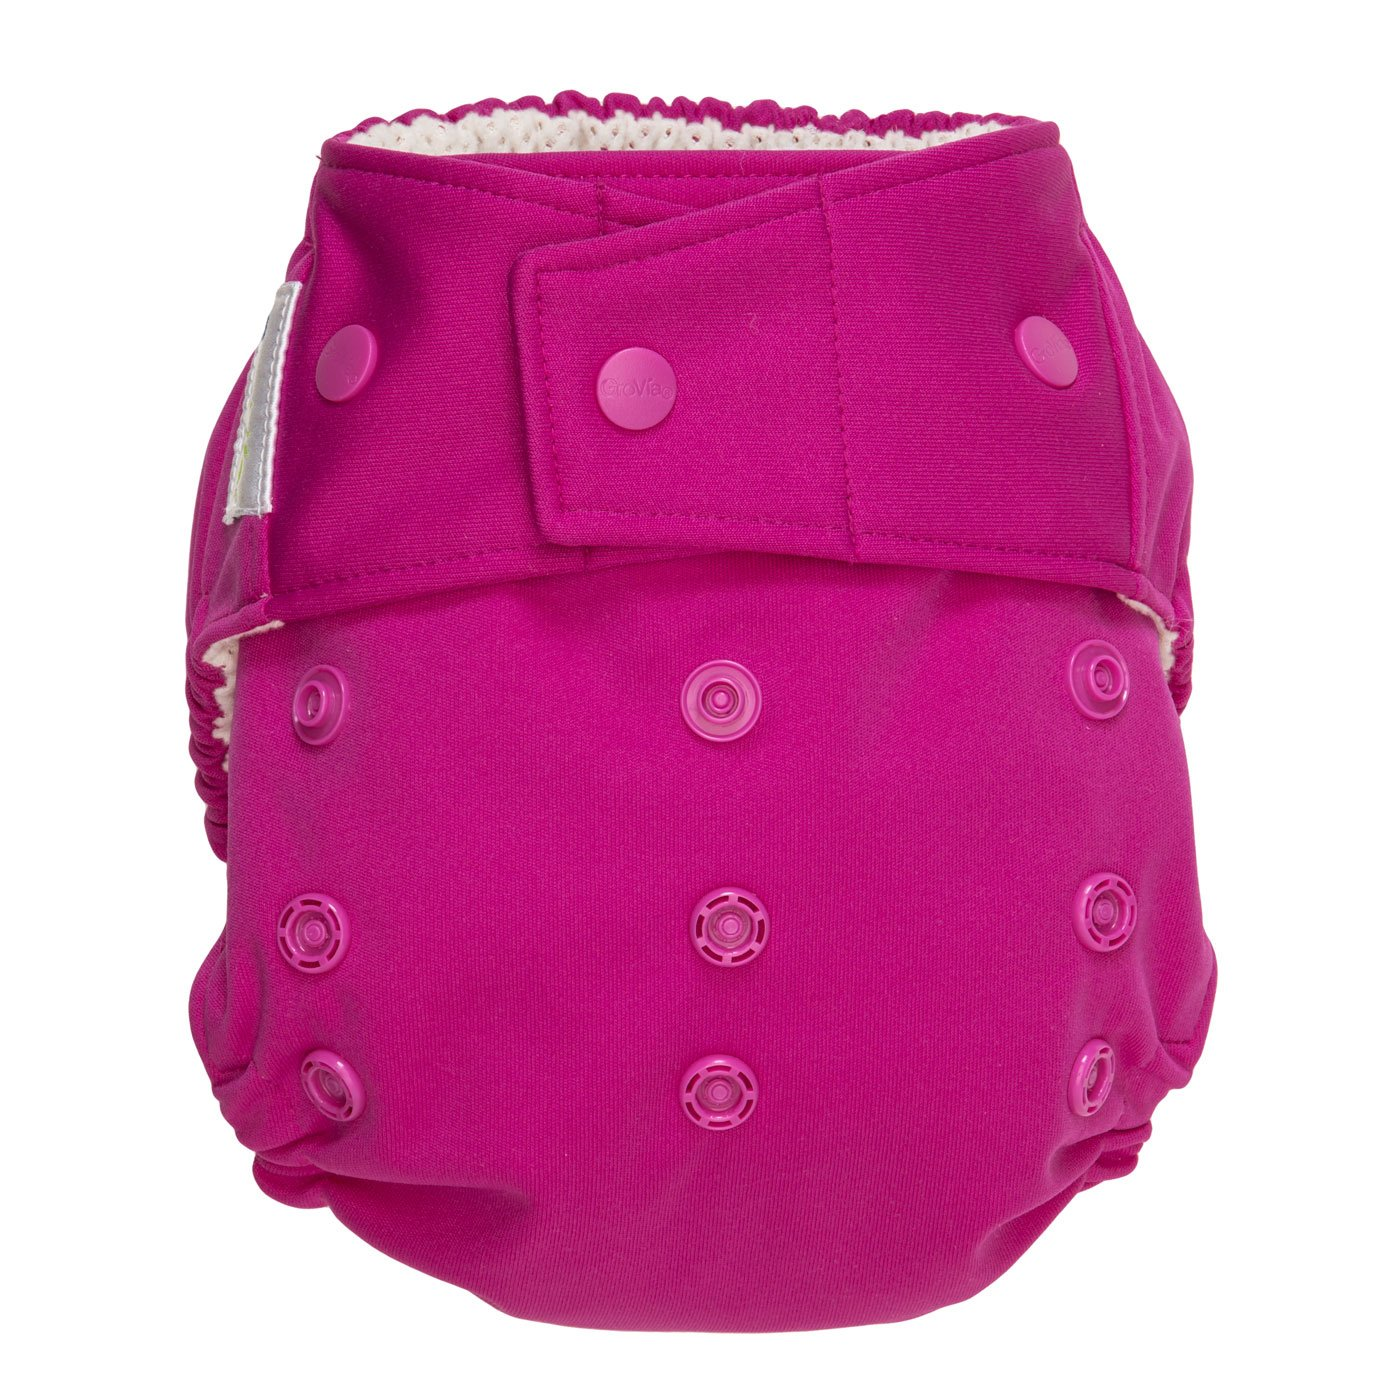 Grovia Hybrid Cloth Diaper